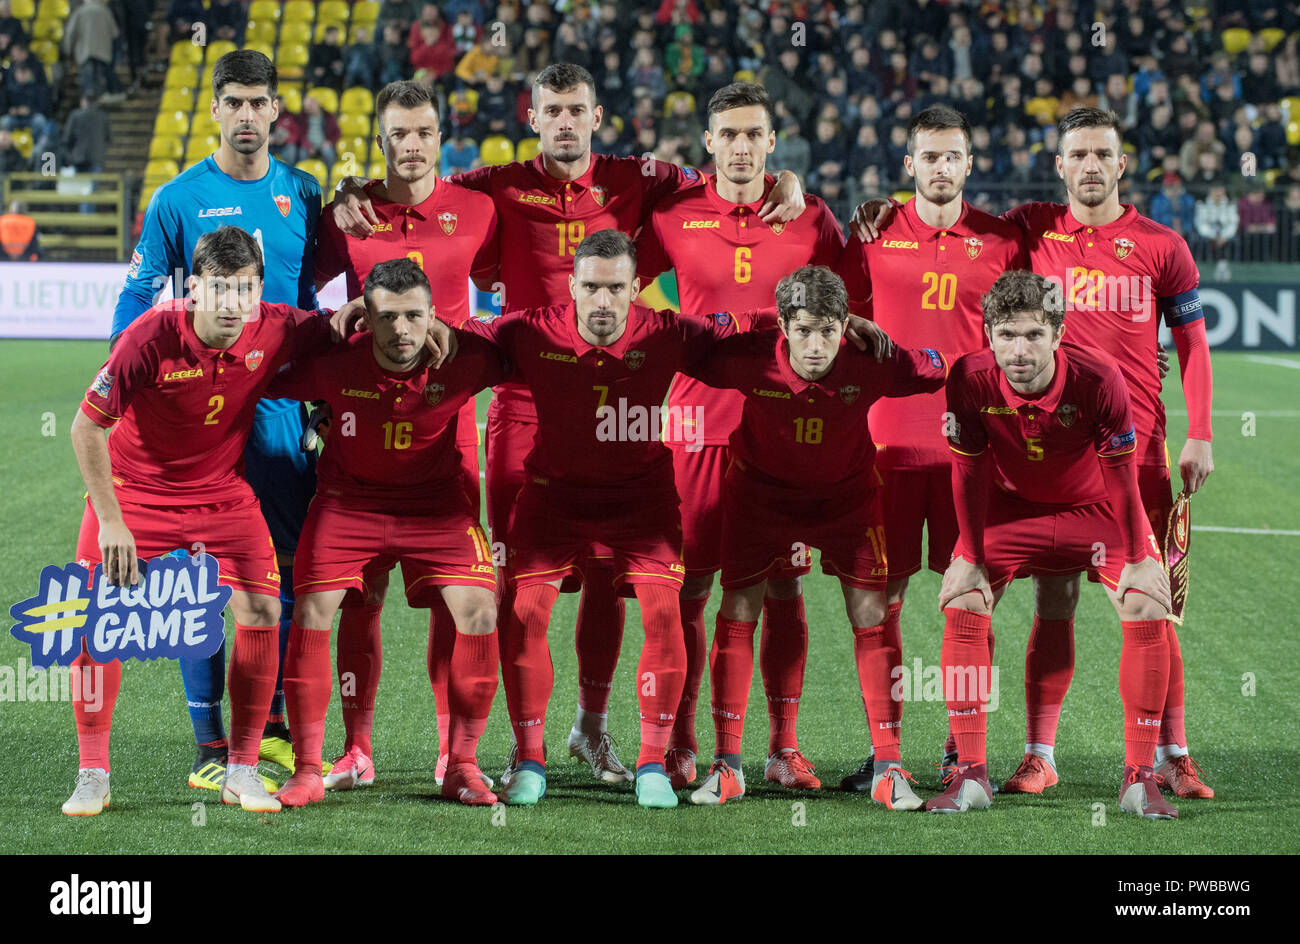 Vilnius, Lithuania. 14th Oct, 2018. Players of Montenegro line up before the UEFA Nations League C match between Lithuania and Montenegro at LFF Stadium in Vilnius, Lithuania, on Oct. 14, 2018. Montenegro won 4-1. Credit: Alfredas Pliadis/Xinhua/Alamy Live News - Stock Image